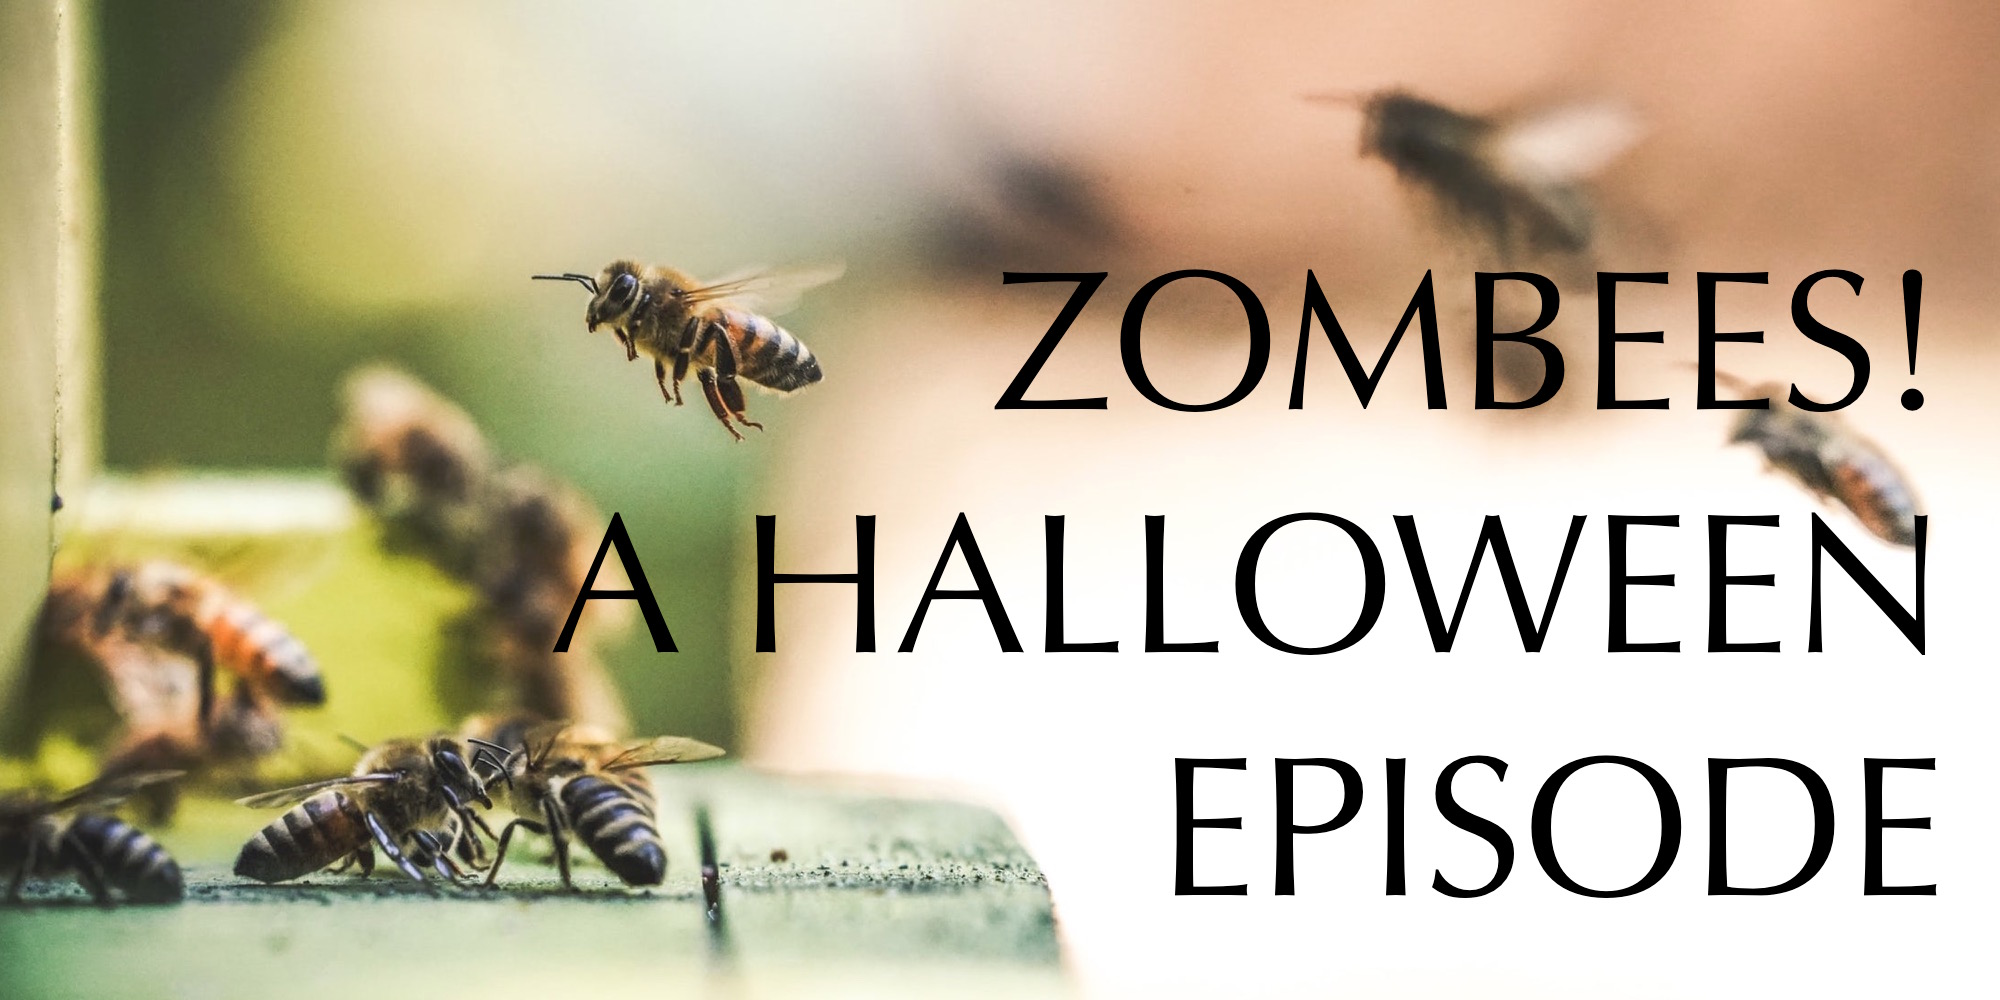 ZOMBEES! A Halloween Episode